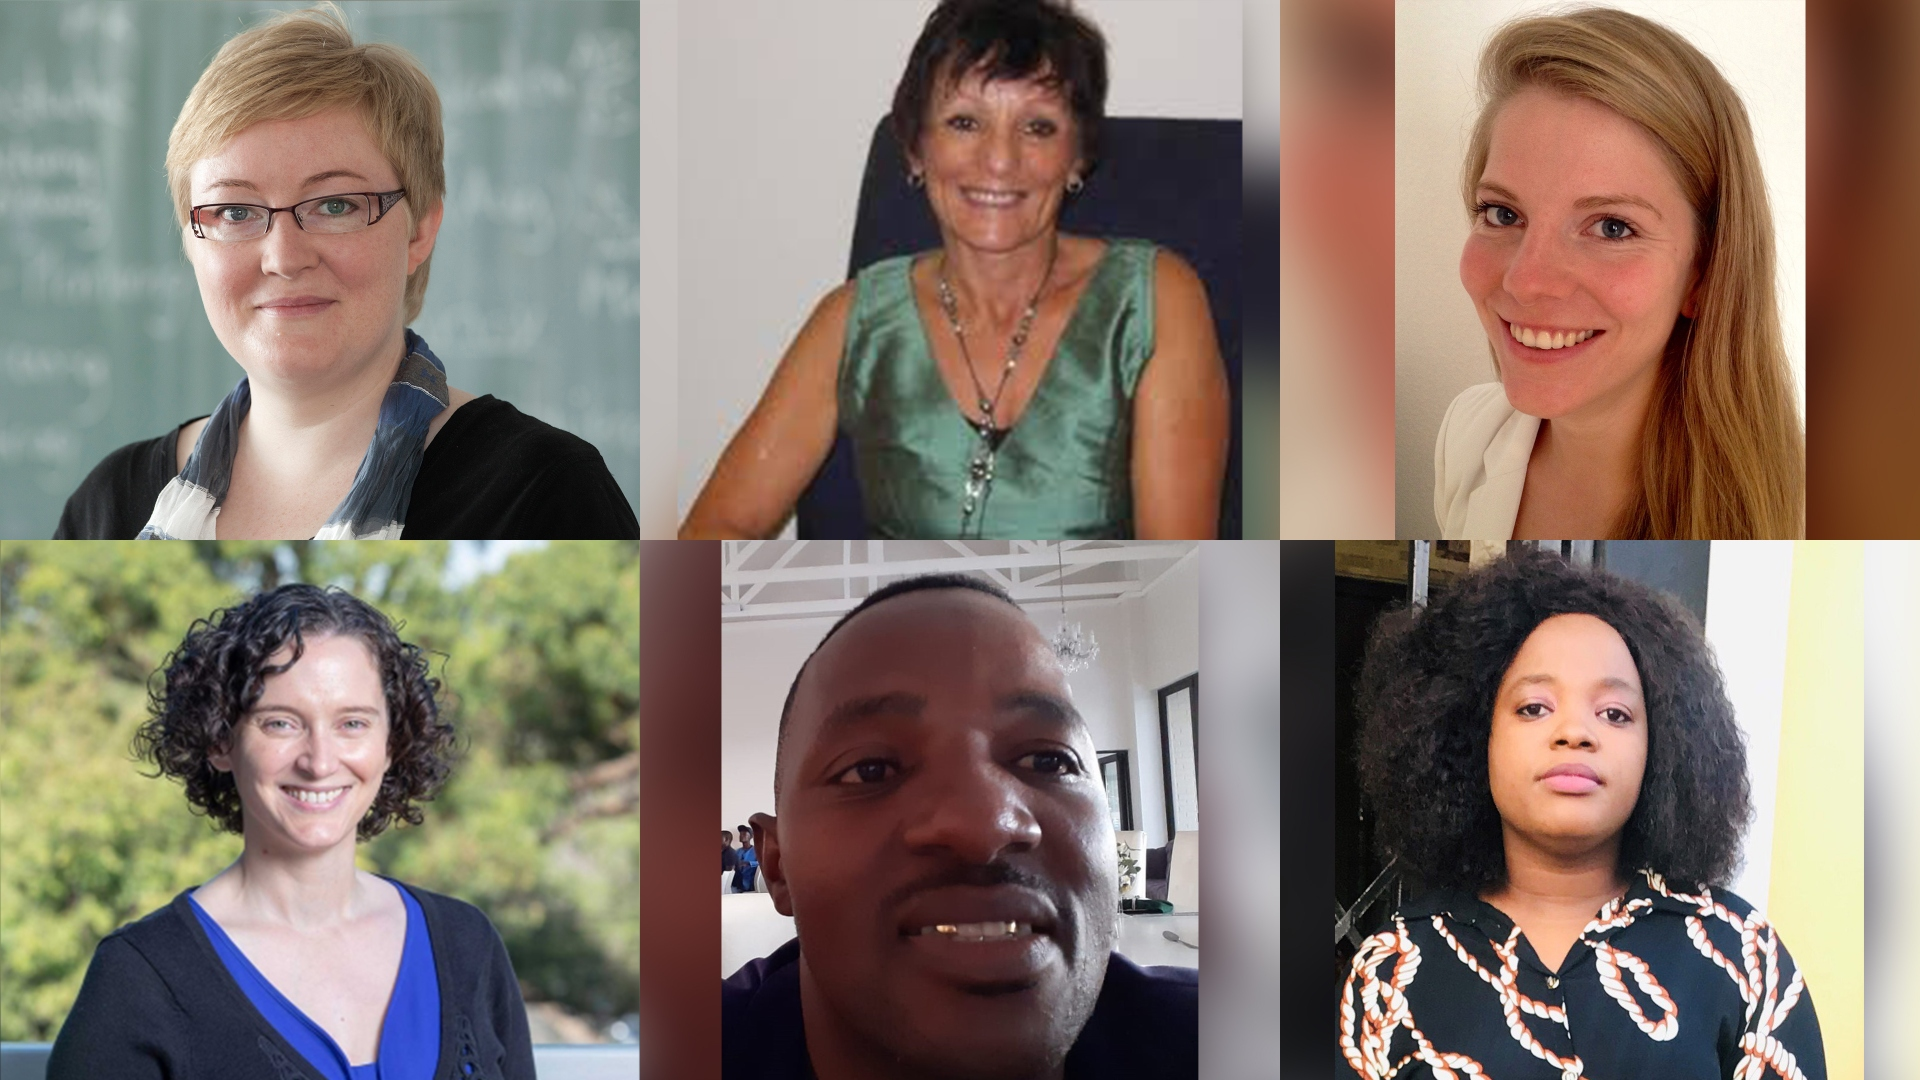 Top from left: Professor Anja Philipp, Professor Lesley Wood and Mrs Miriam Arnold. Bottom from left: Dr Rebecca Collie, Mr Ndabenhle Terry Mdluli and Ms Nompumelelo Nzimande.